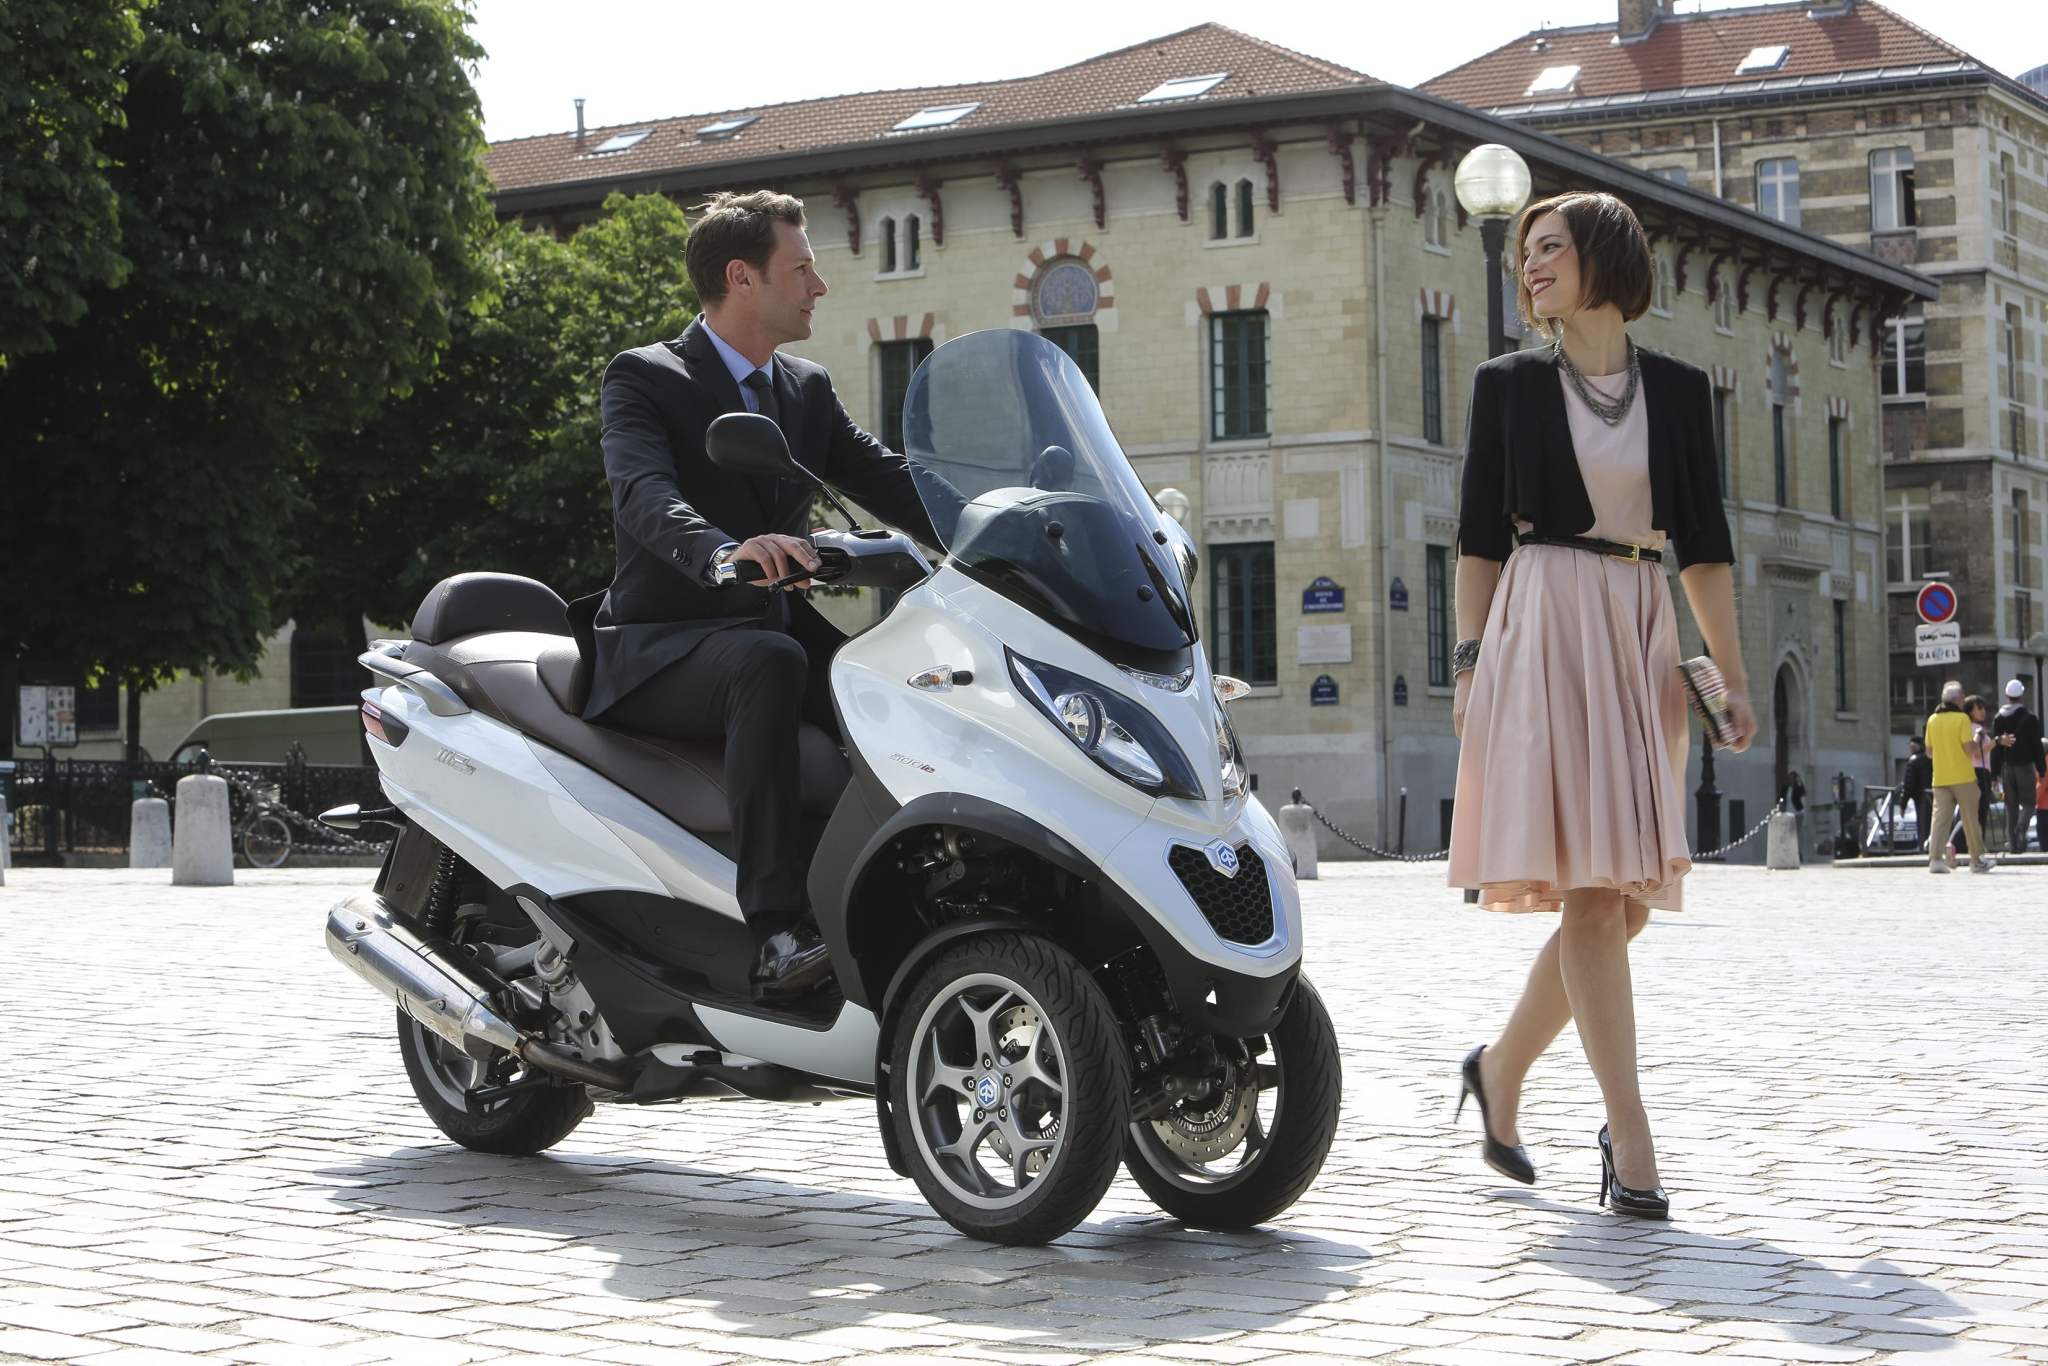 piaggio updates the mp3 500, adds abs/asc   scooterfile